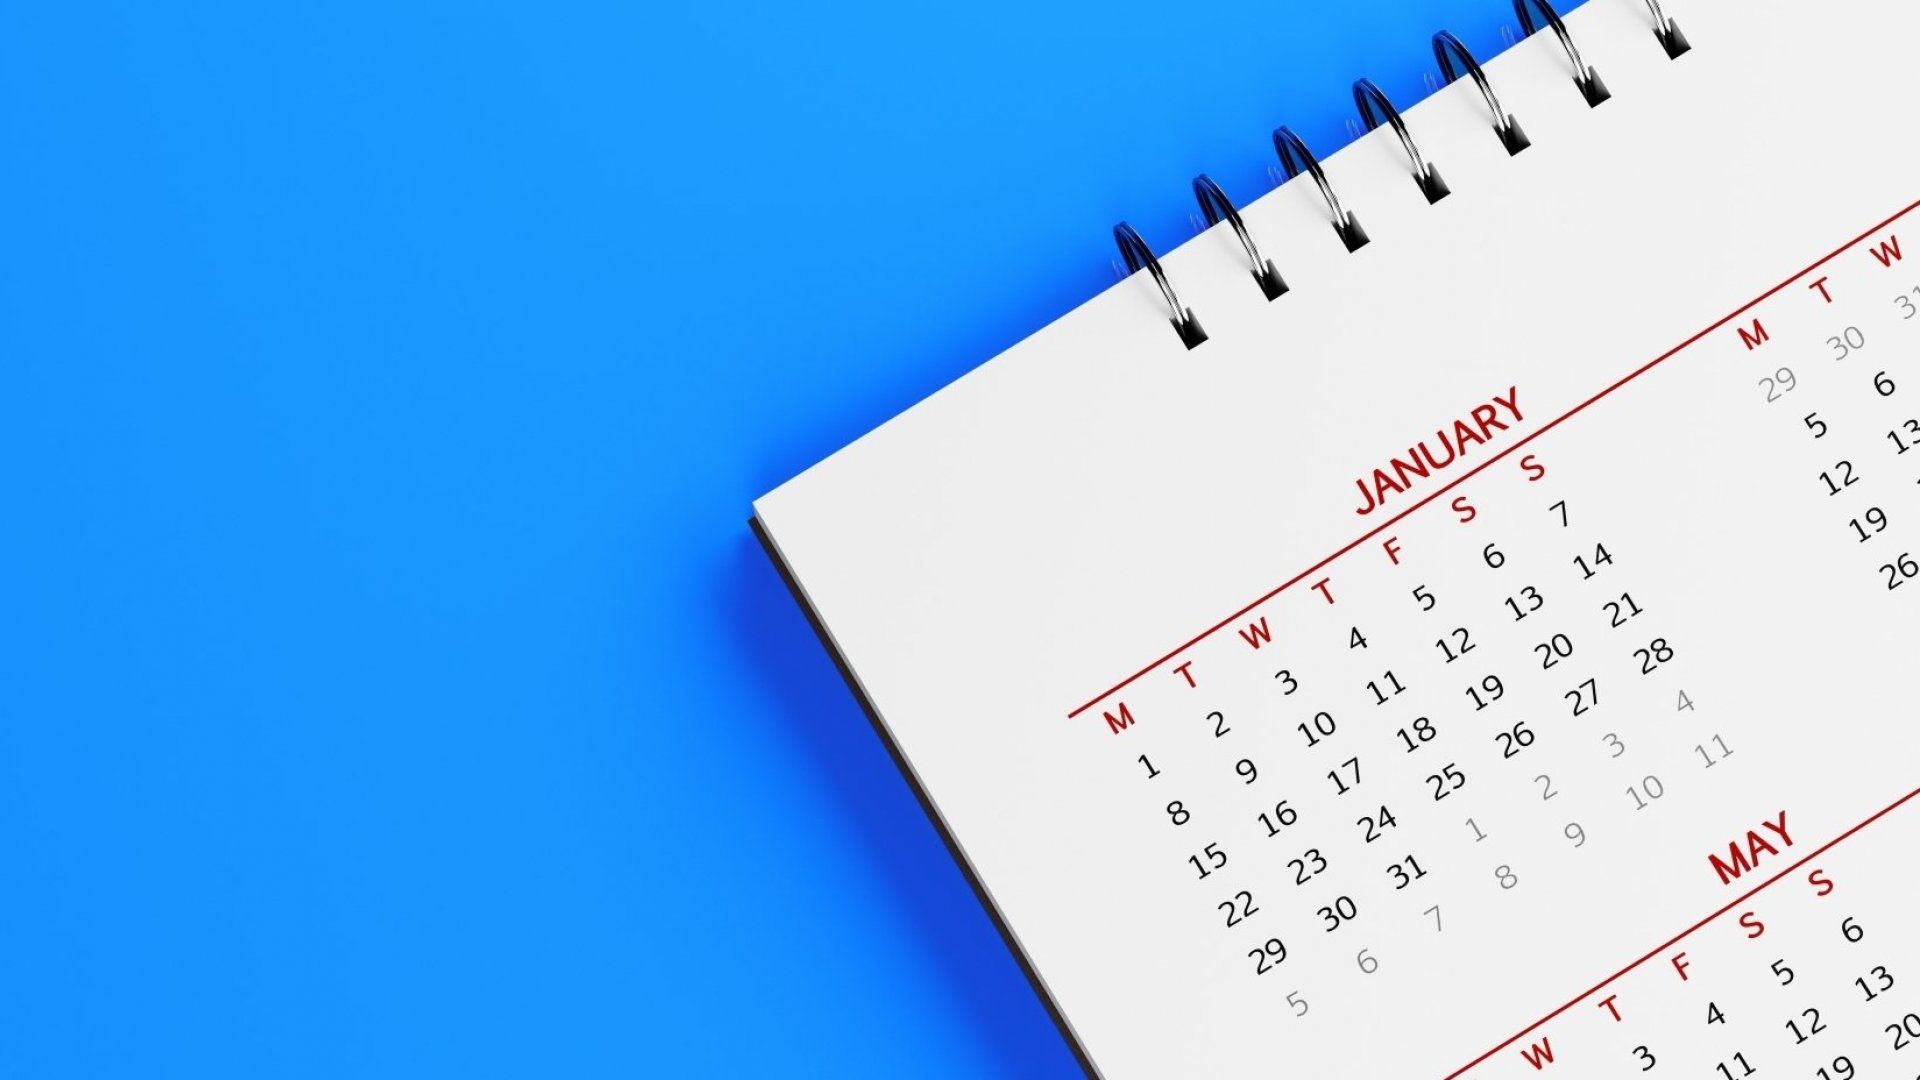 5 Calendar Hacks to Save 5 Hours Every Week